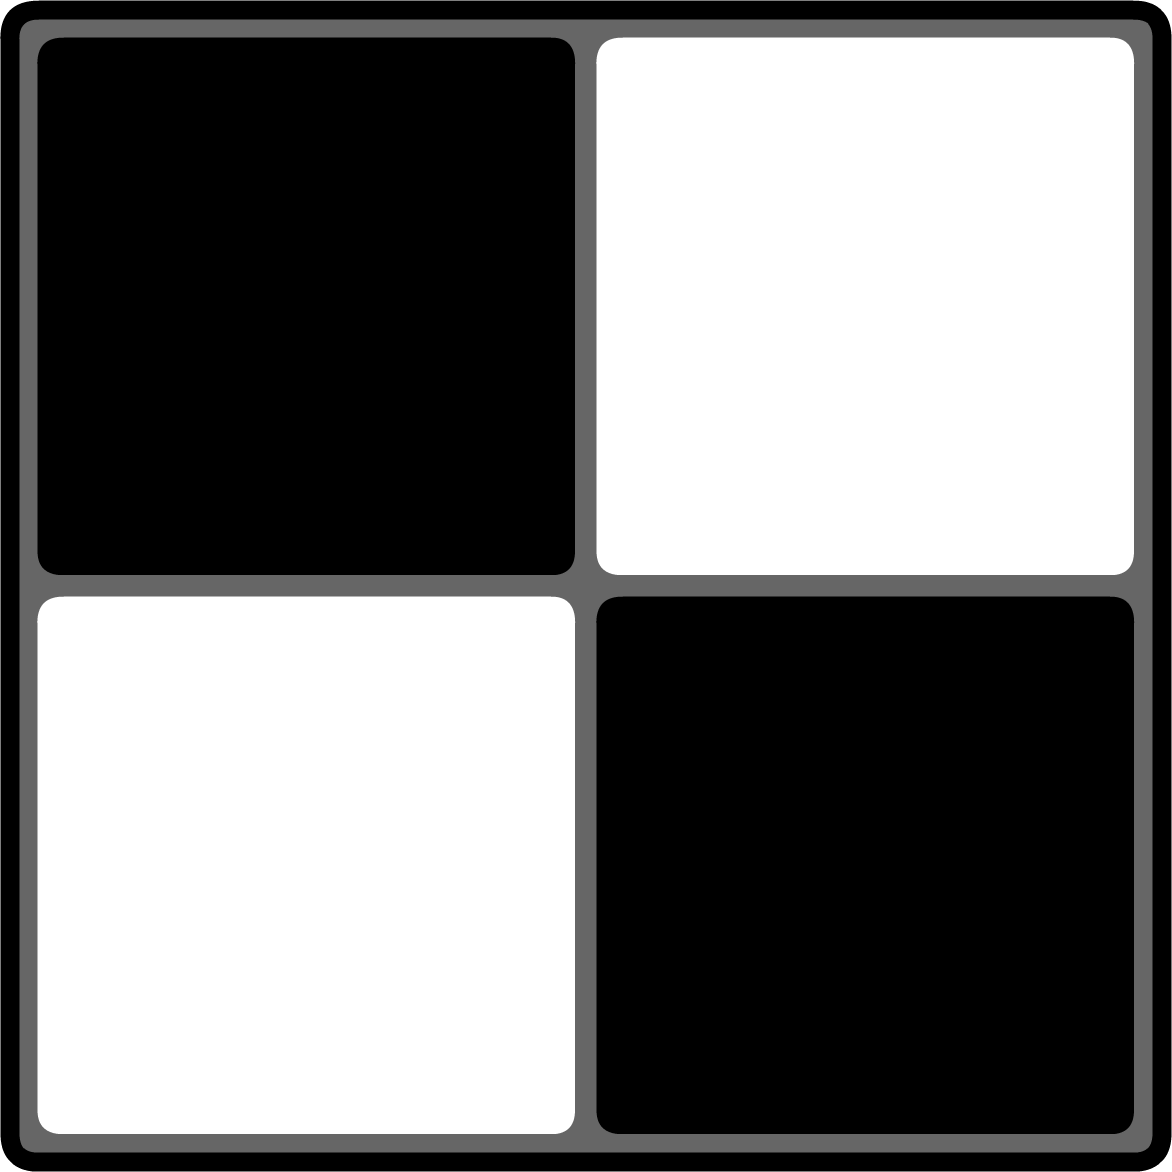 Black And White Tiles Black White Tile Club Penguin Wiki Fandom Powered By Wikia